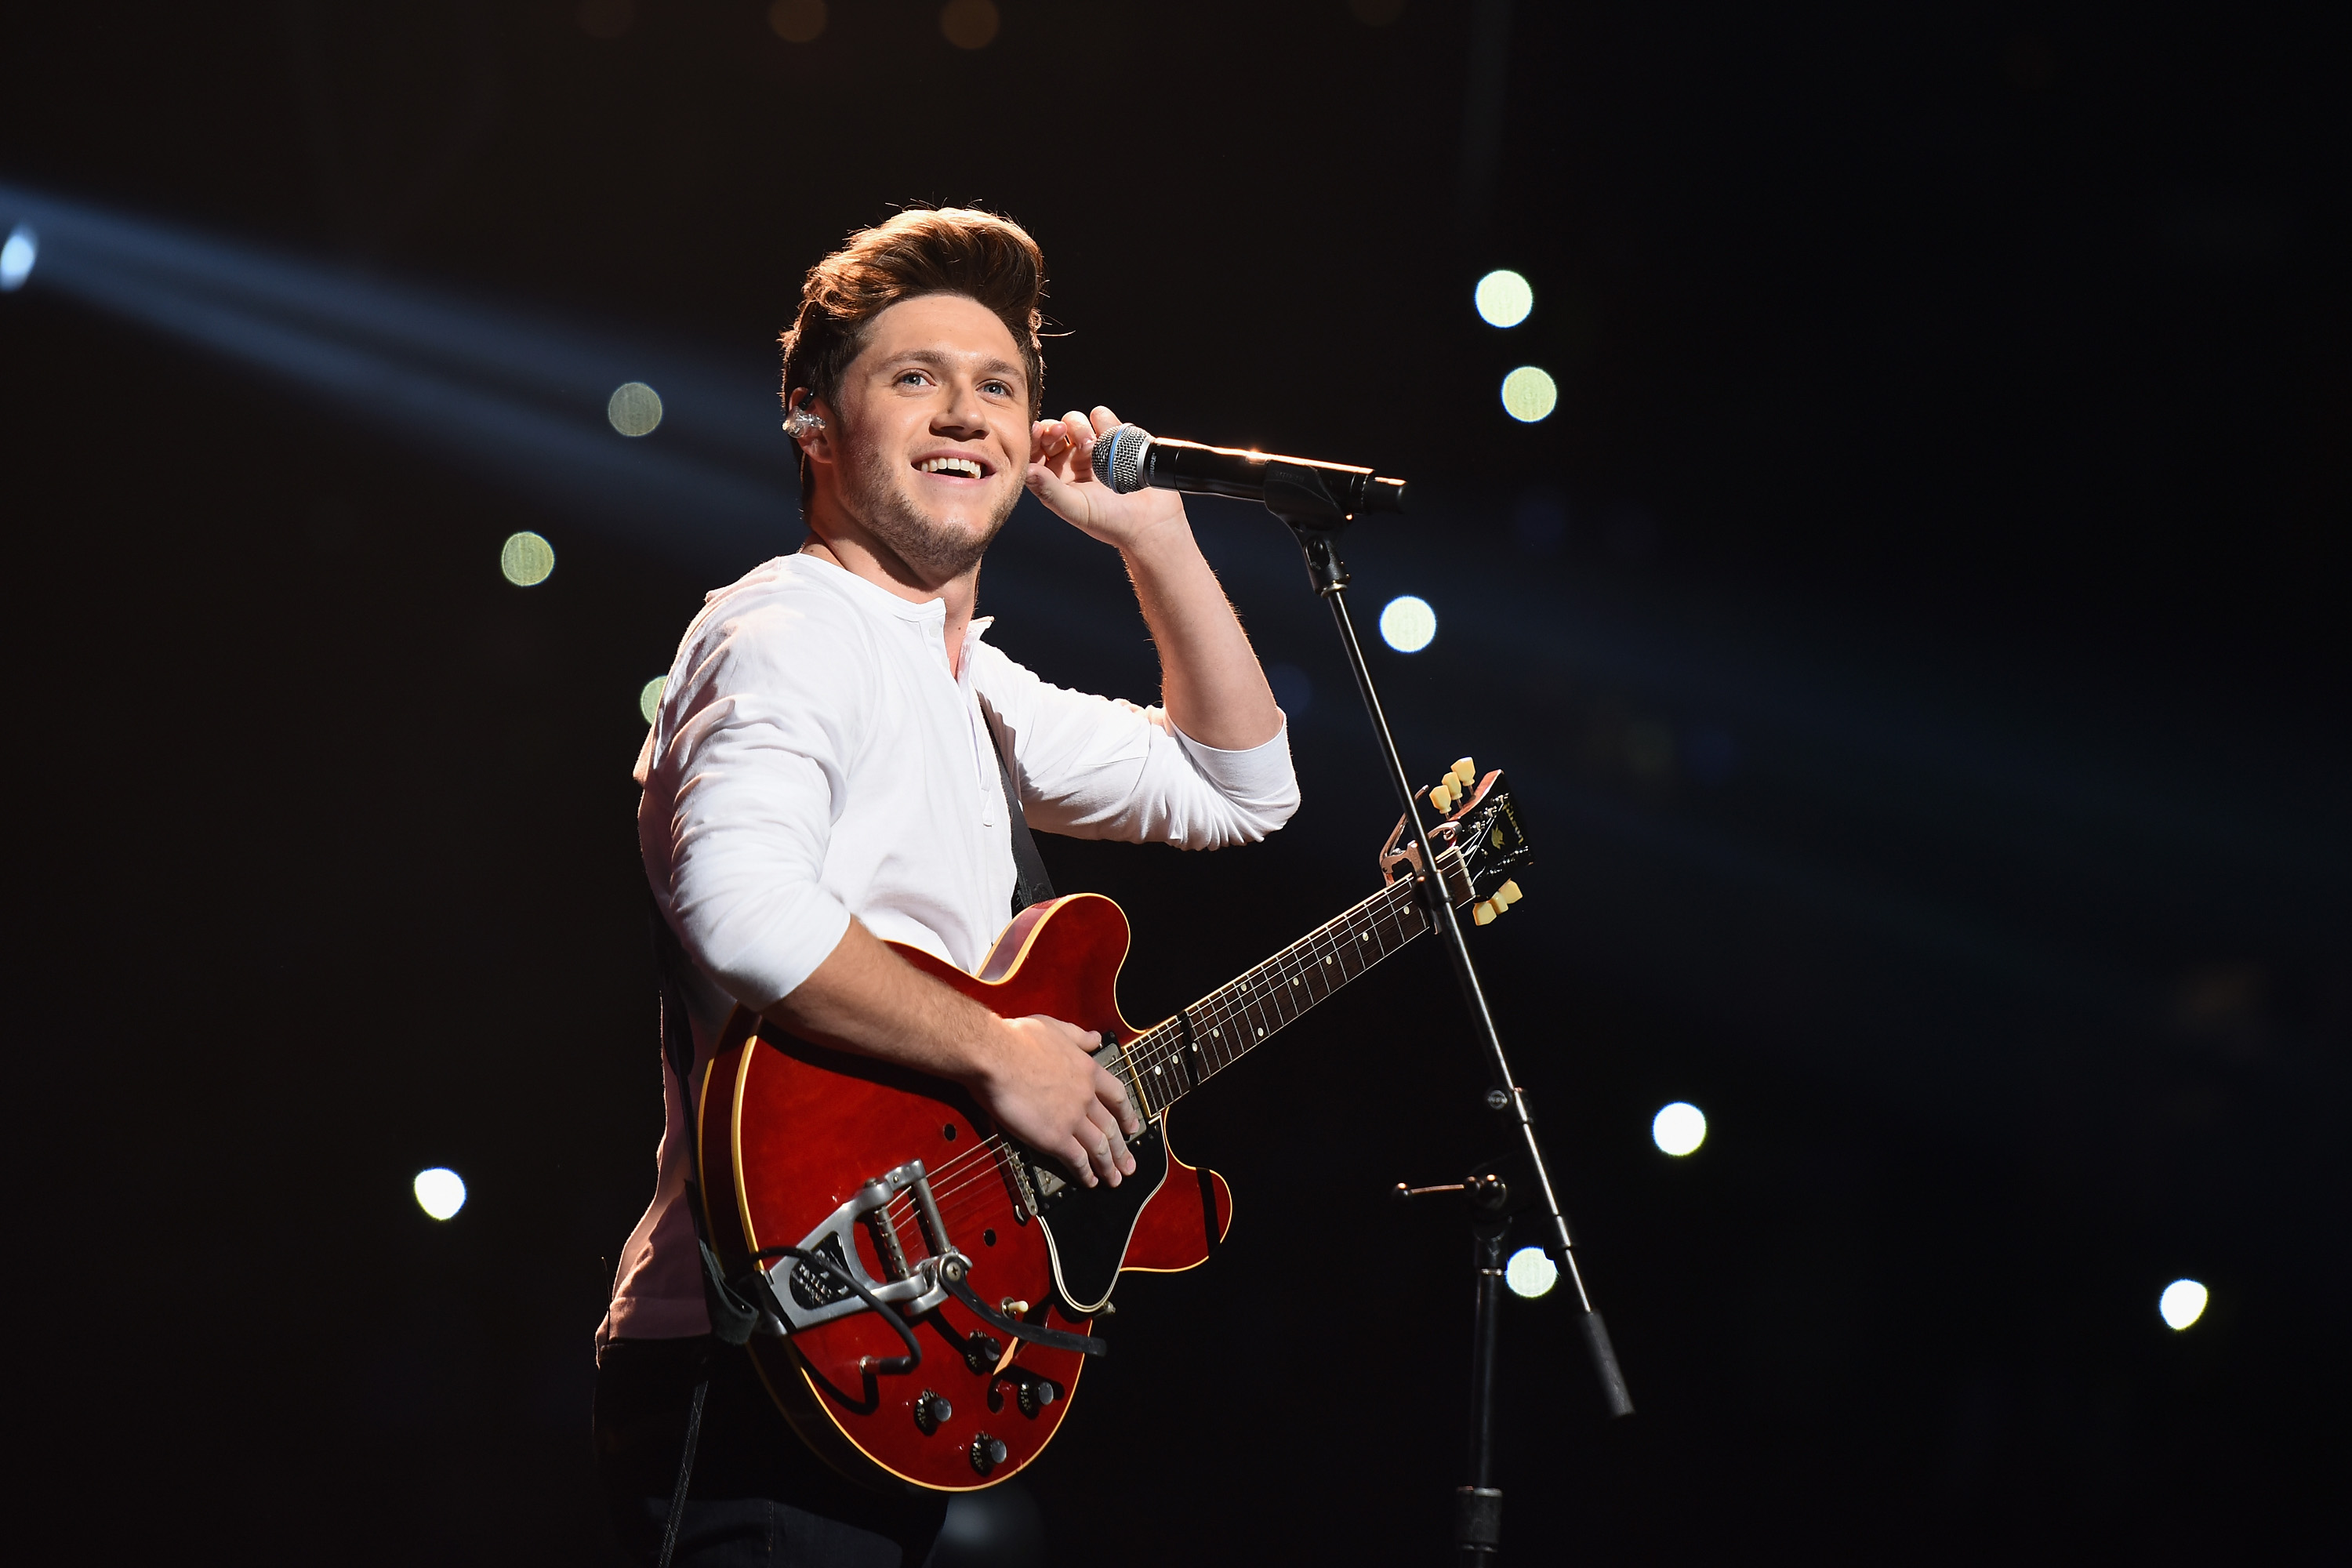 BOSTON, MA - DECEMBER 11: Singer Niall Horan performs on stage during KISS 108's Jingle Ball 2016 at TD Garden on December 11, 2016 in Boston, Massachusetts. (Photo by Dave Kotinsky/Getty Images for iHeart)